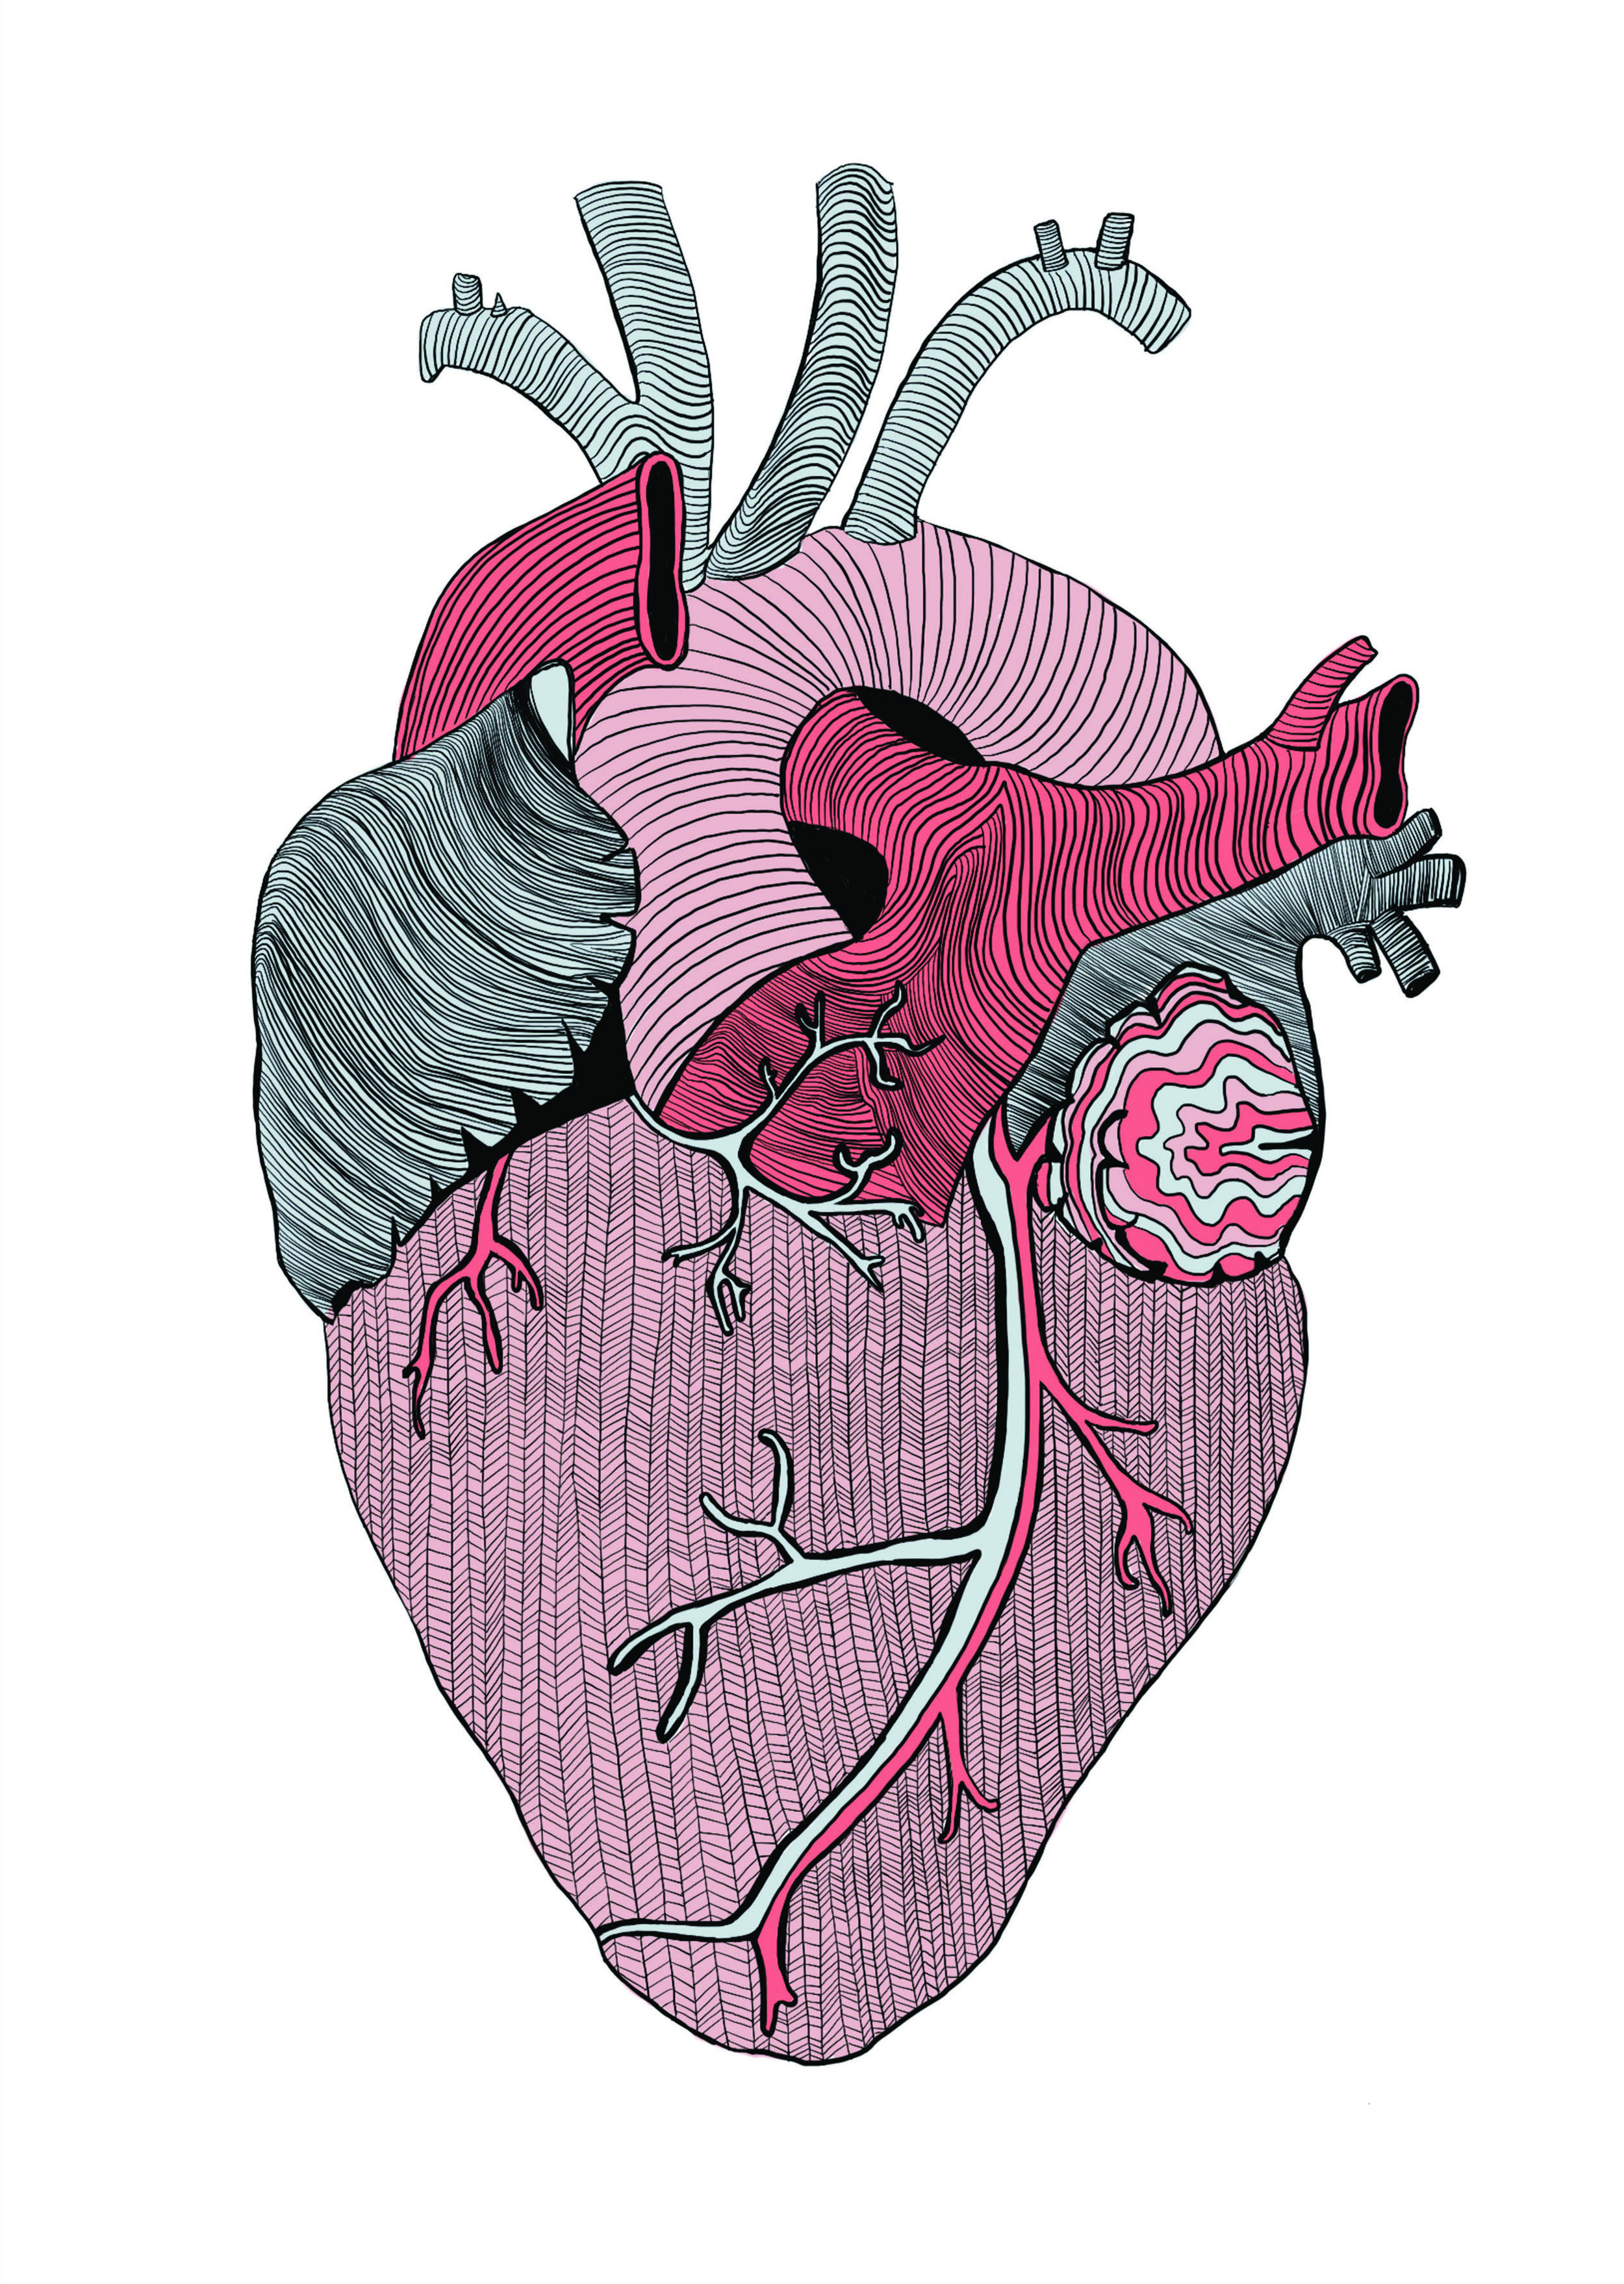 Heart illustration